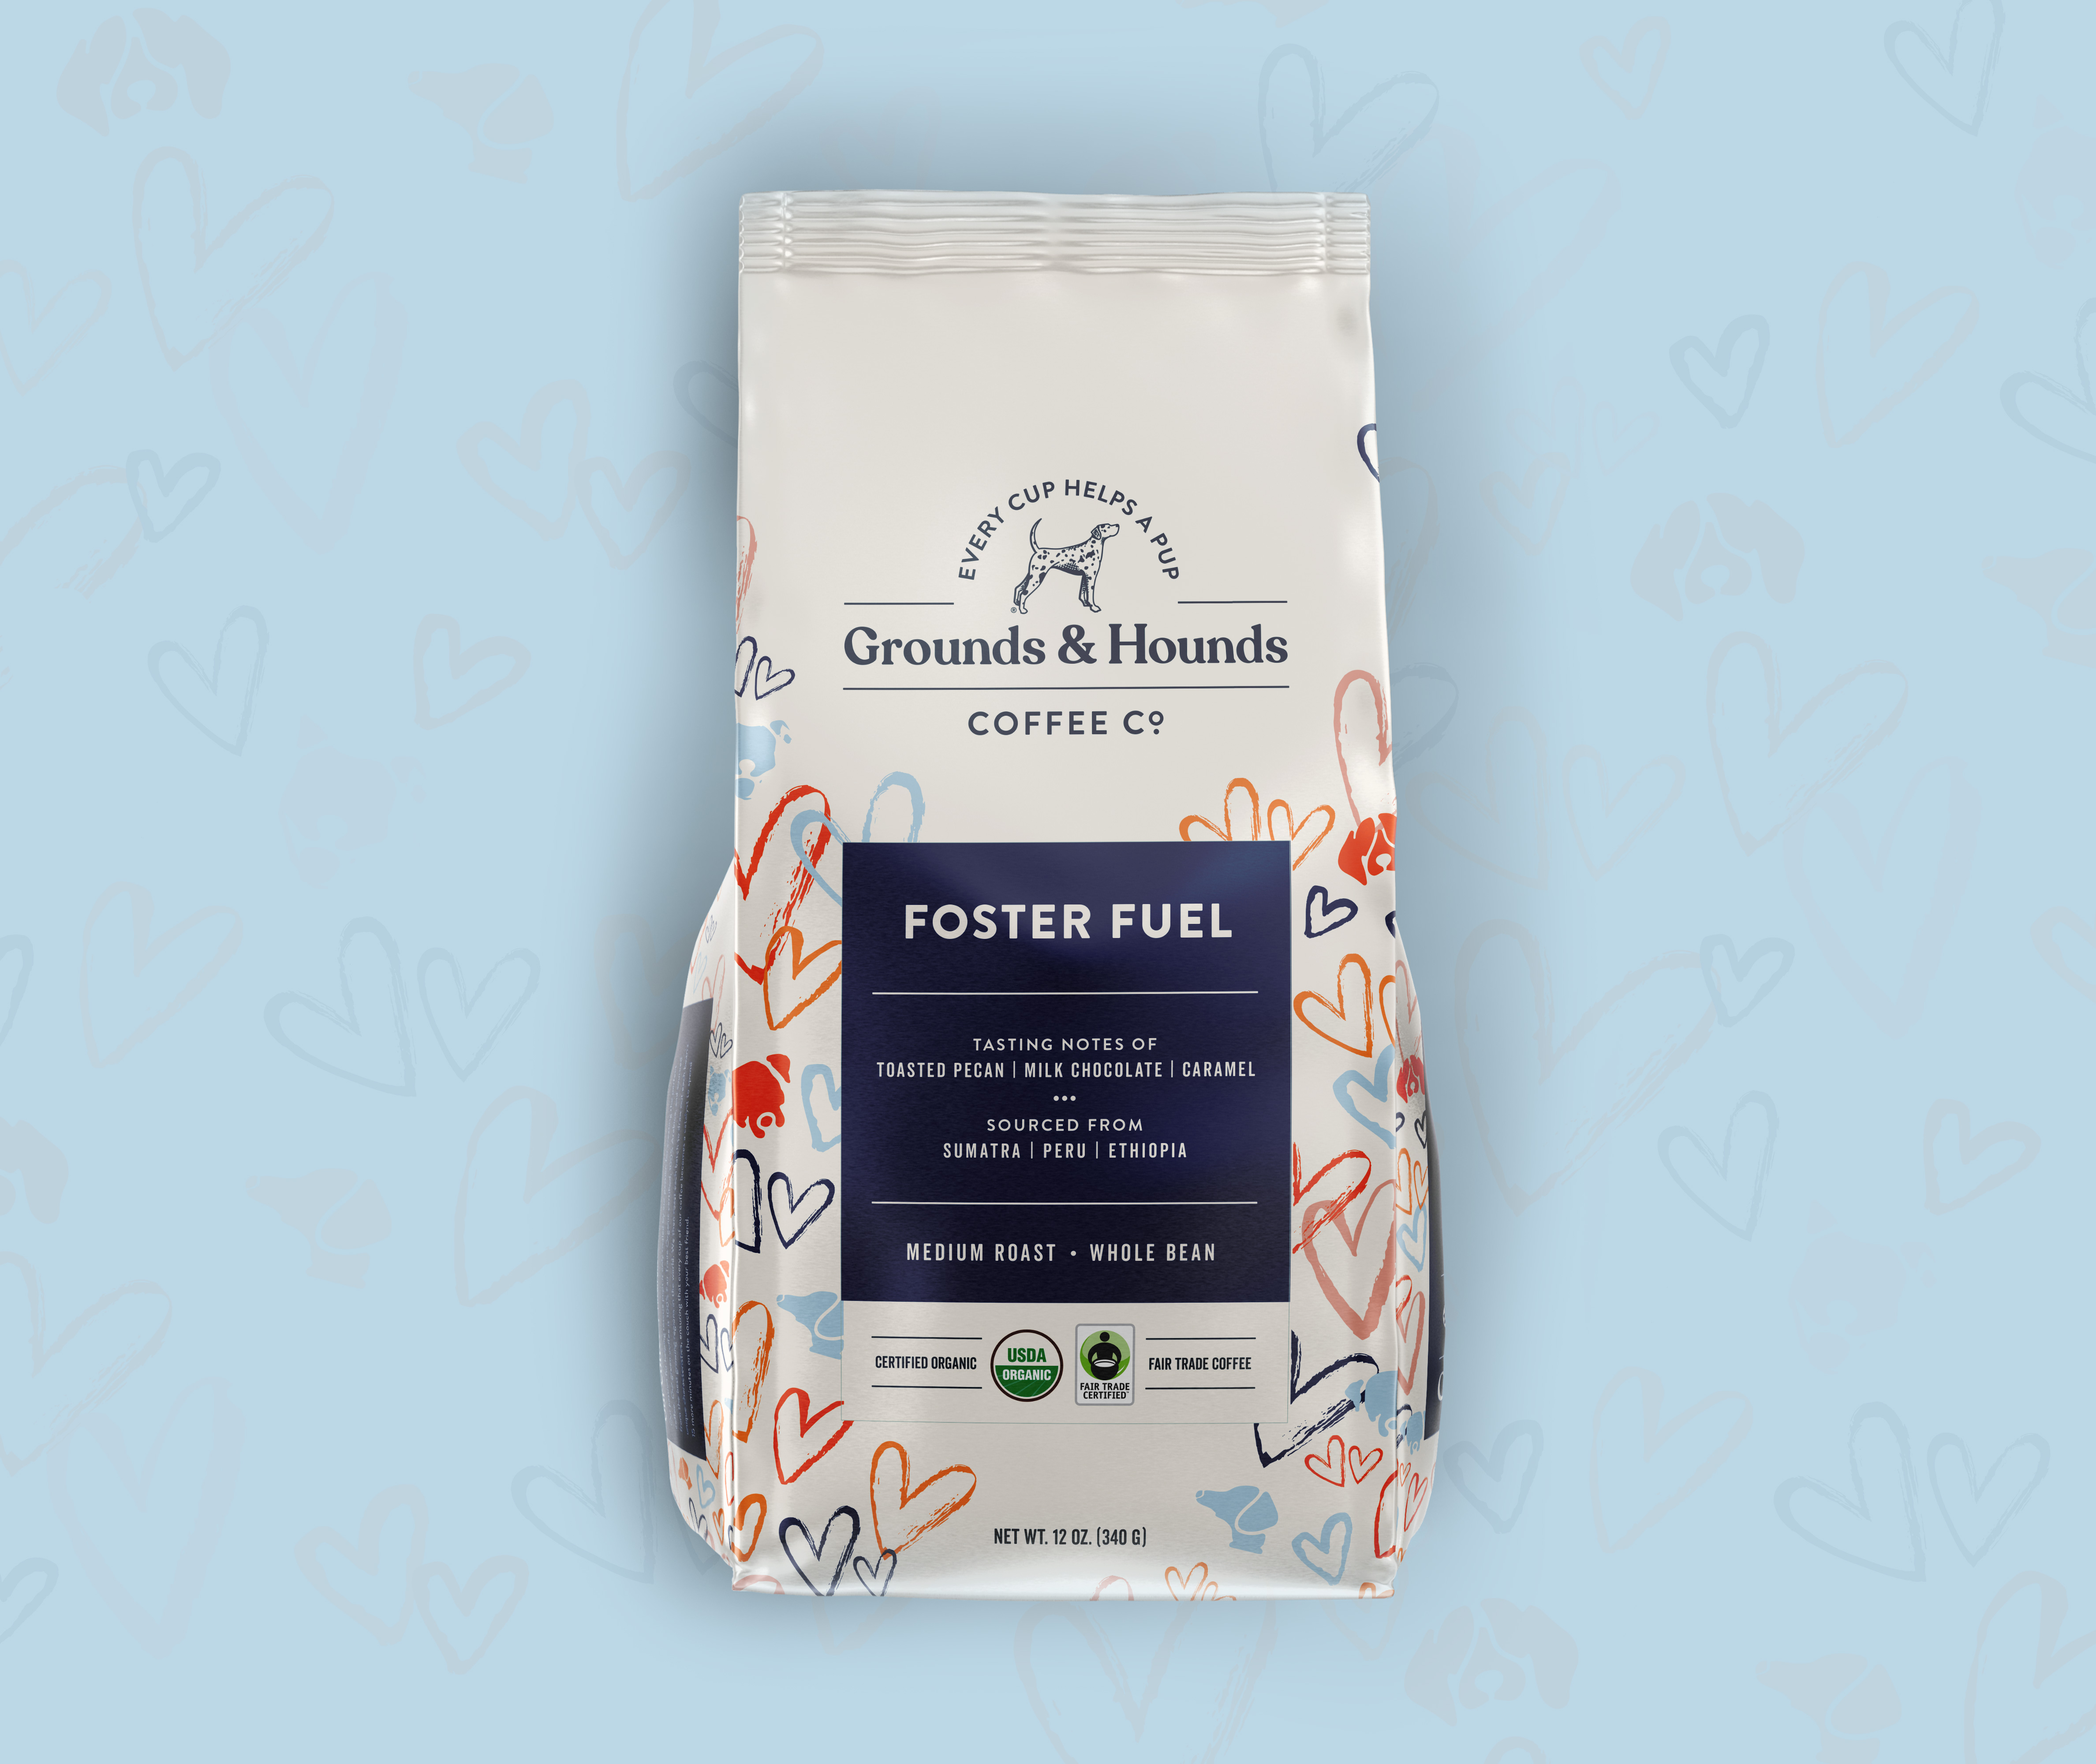 Grounds & Hounds Packaging Pattern